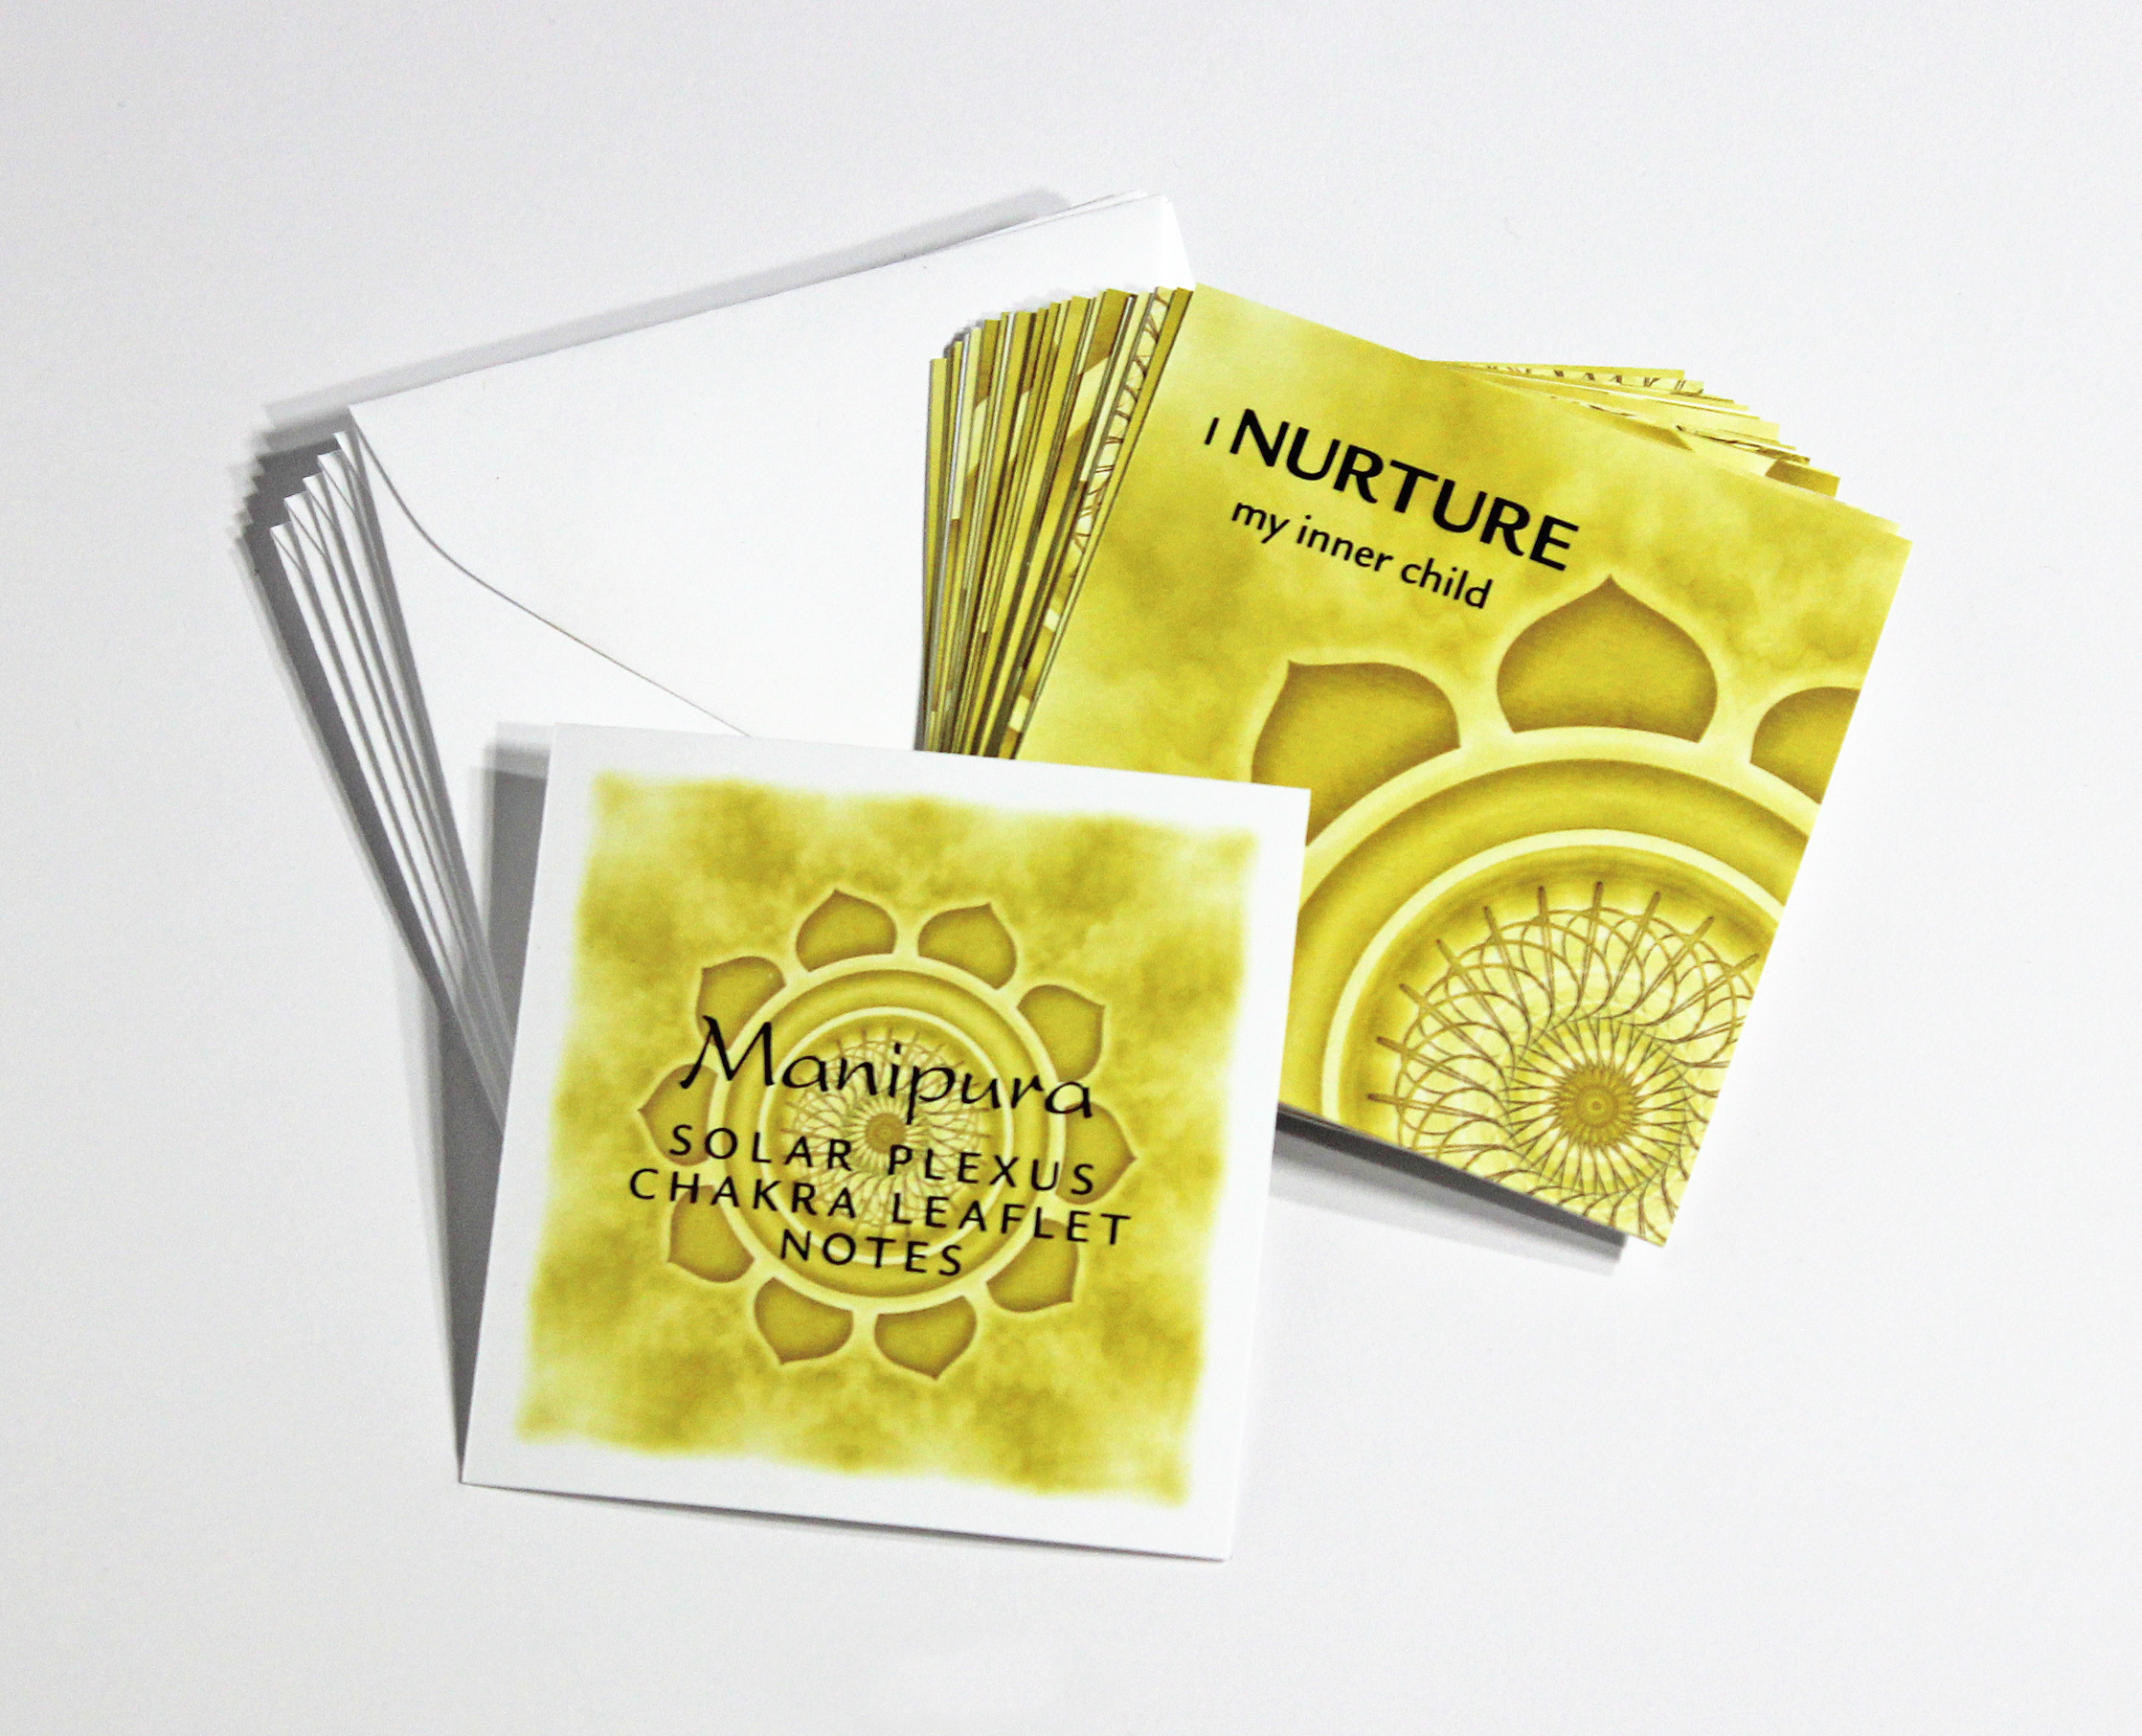 SOLAR PLEXUS   CHAKRA LEAFLET NOTES - $18  Harness your personal power and inner drive with our tiny Solar Plexus Chakra LeafLet Notes.